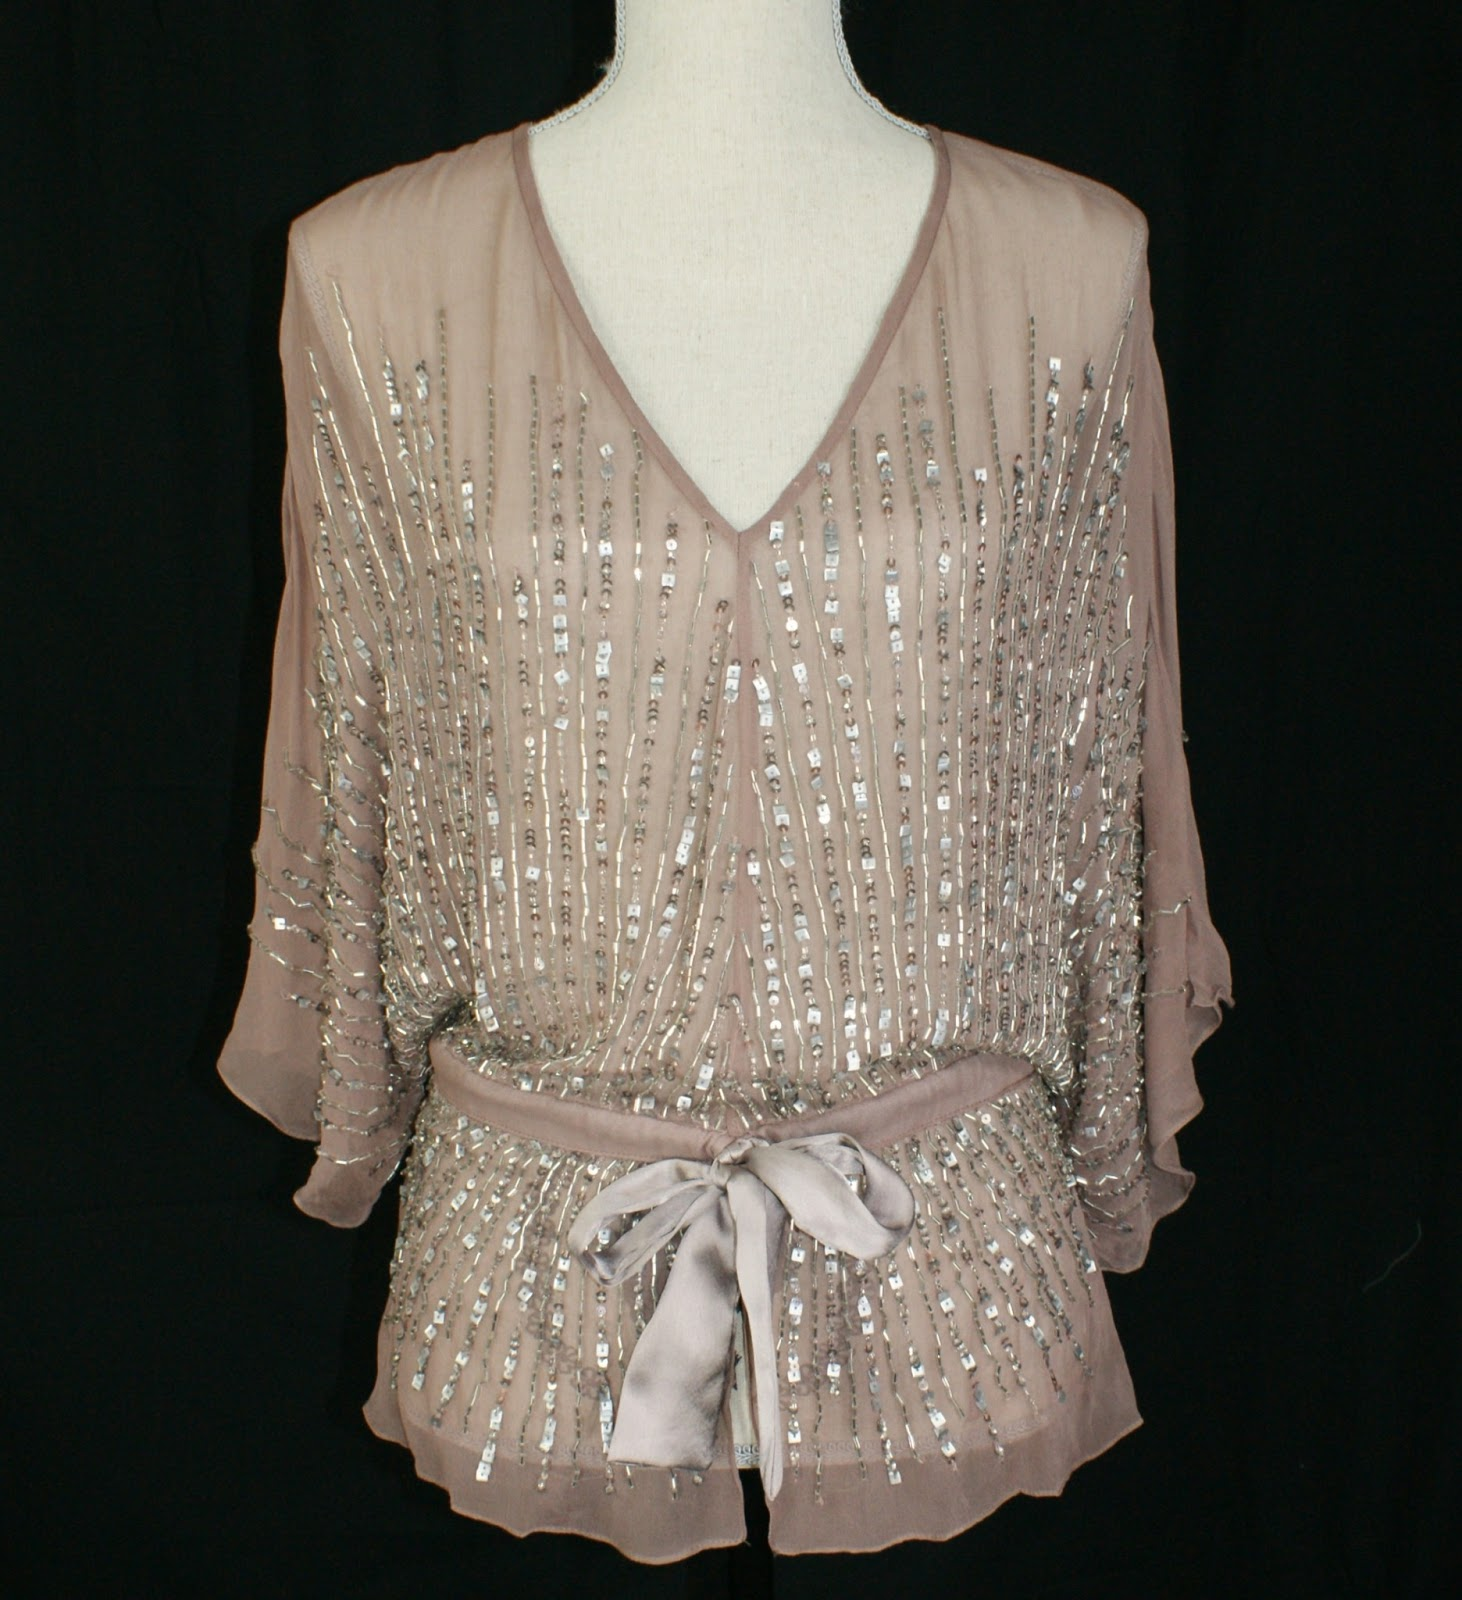 Plus Size Beaded Tops So no matter if you need one for an elegant event or you just want to dress up your jeans, there is a great selection available. Beaded and Sequined tops are available as formal wear, to wear with an elegant skirt or plus size special occasion or palazzo pants.